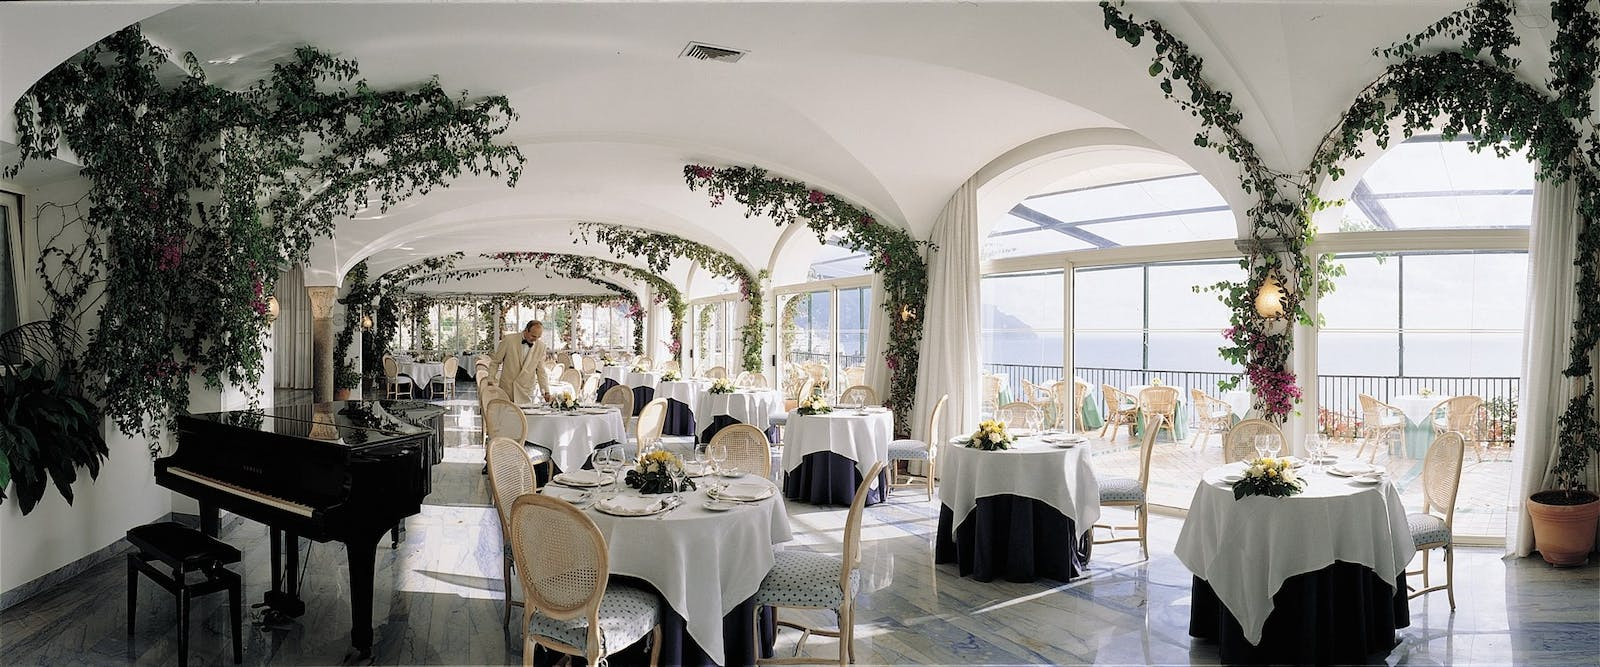 A'la Carte Restaurant at Hotel Santa Caterina, Amalfi Coast, Italy